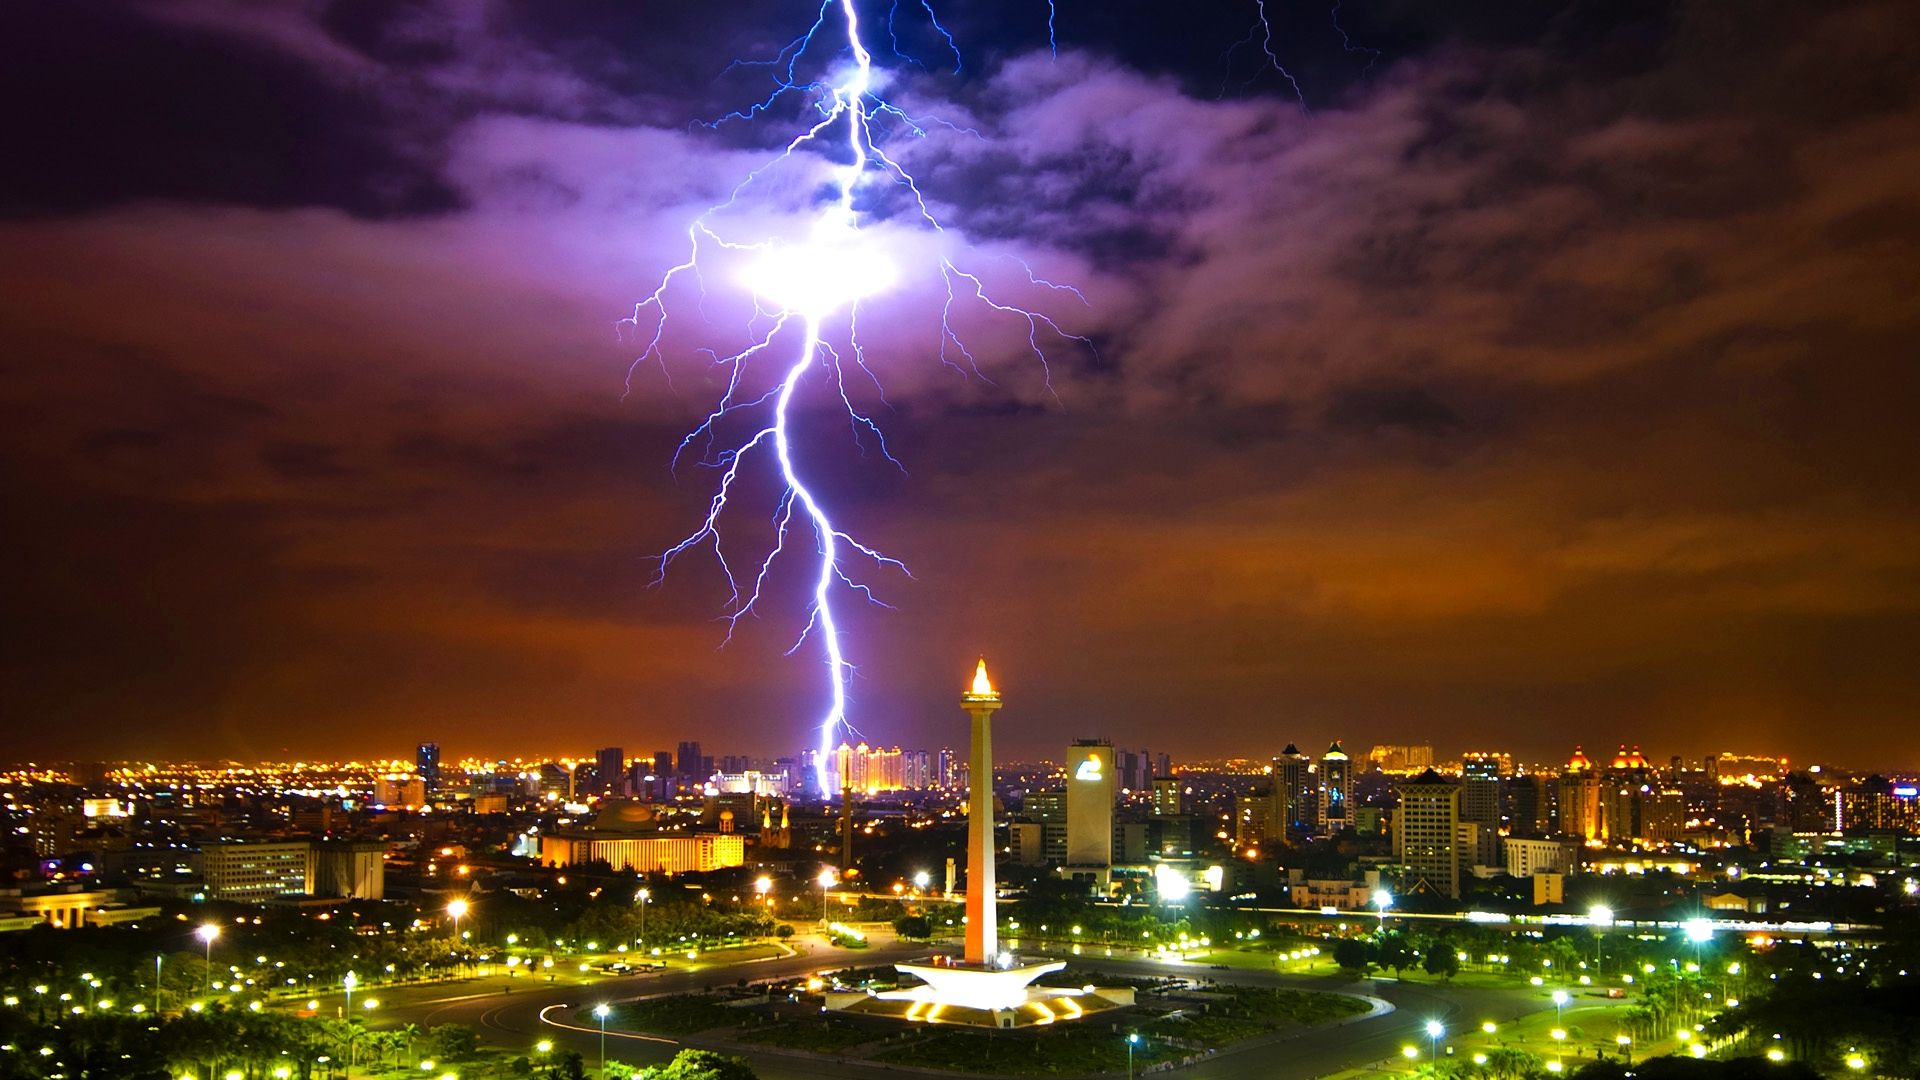 HD The Lightning Wallpaper | Download Free - 56898